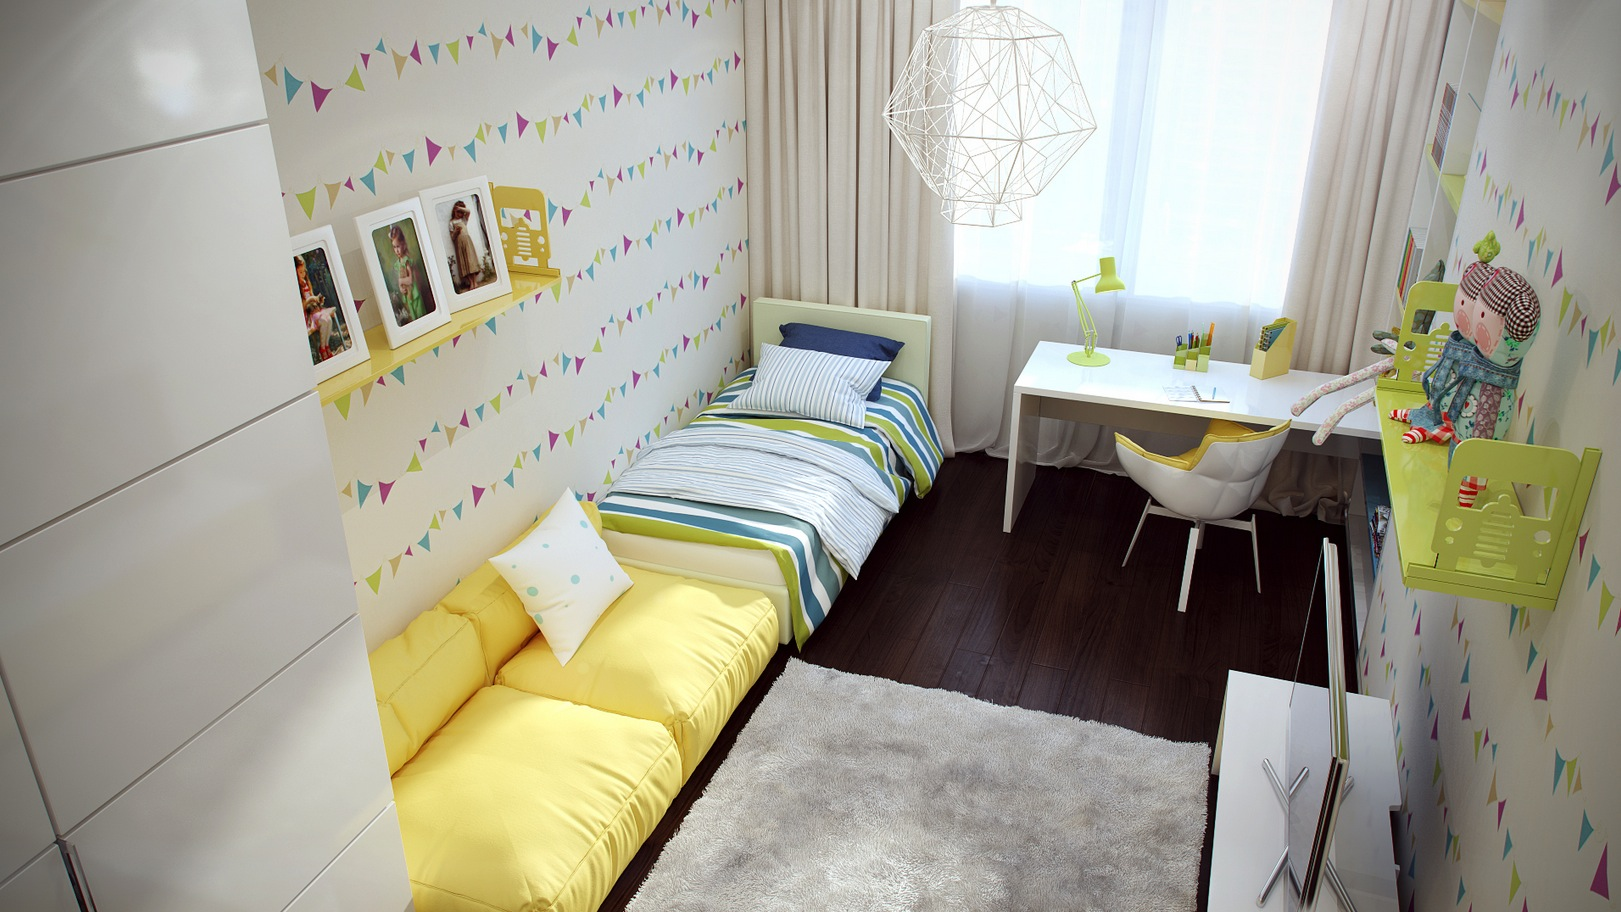 Casting color over kids rooms for Amenagement chambre petite